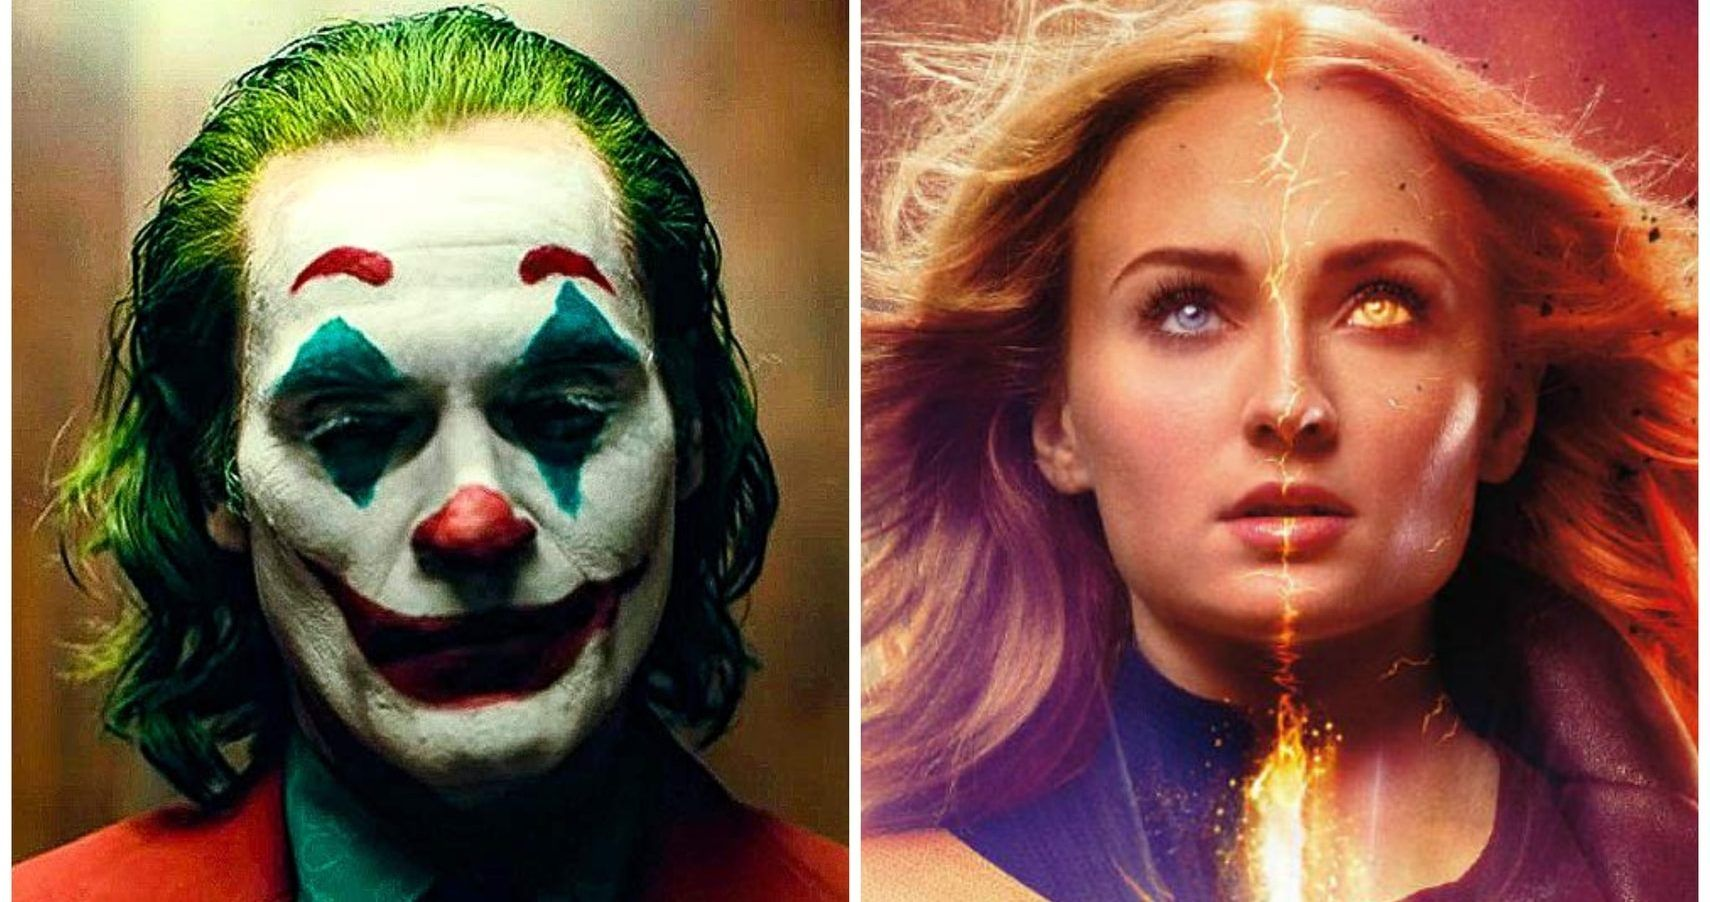 The 5 Biggest Superhero Box Office Bombs Of The Year The 5 Best According To Box Office Mojo